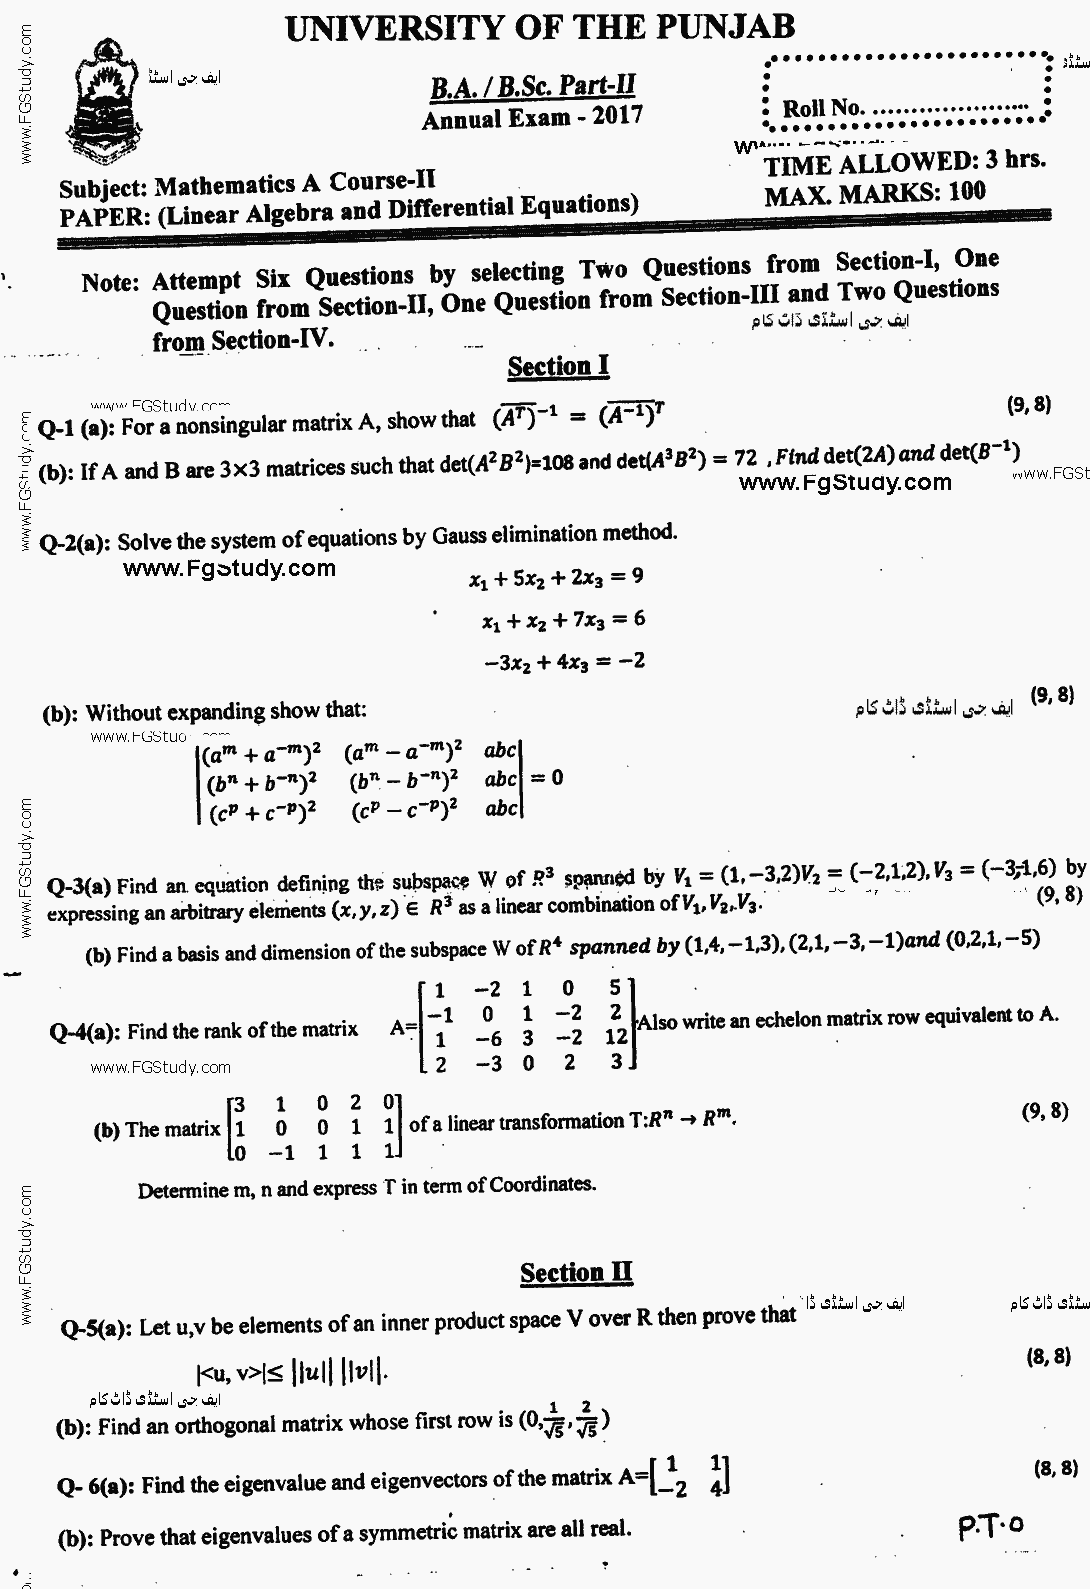 Mathematics Linear Algebra & Differential Eq Group 2 BA Part 2 Past Papers 2017